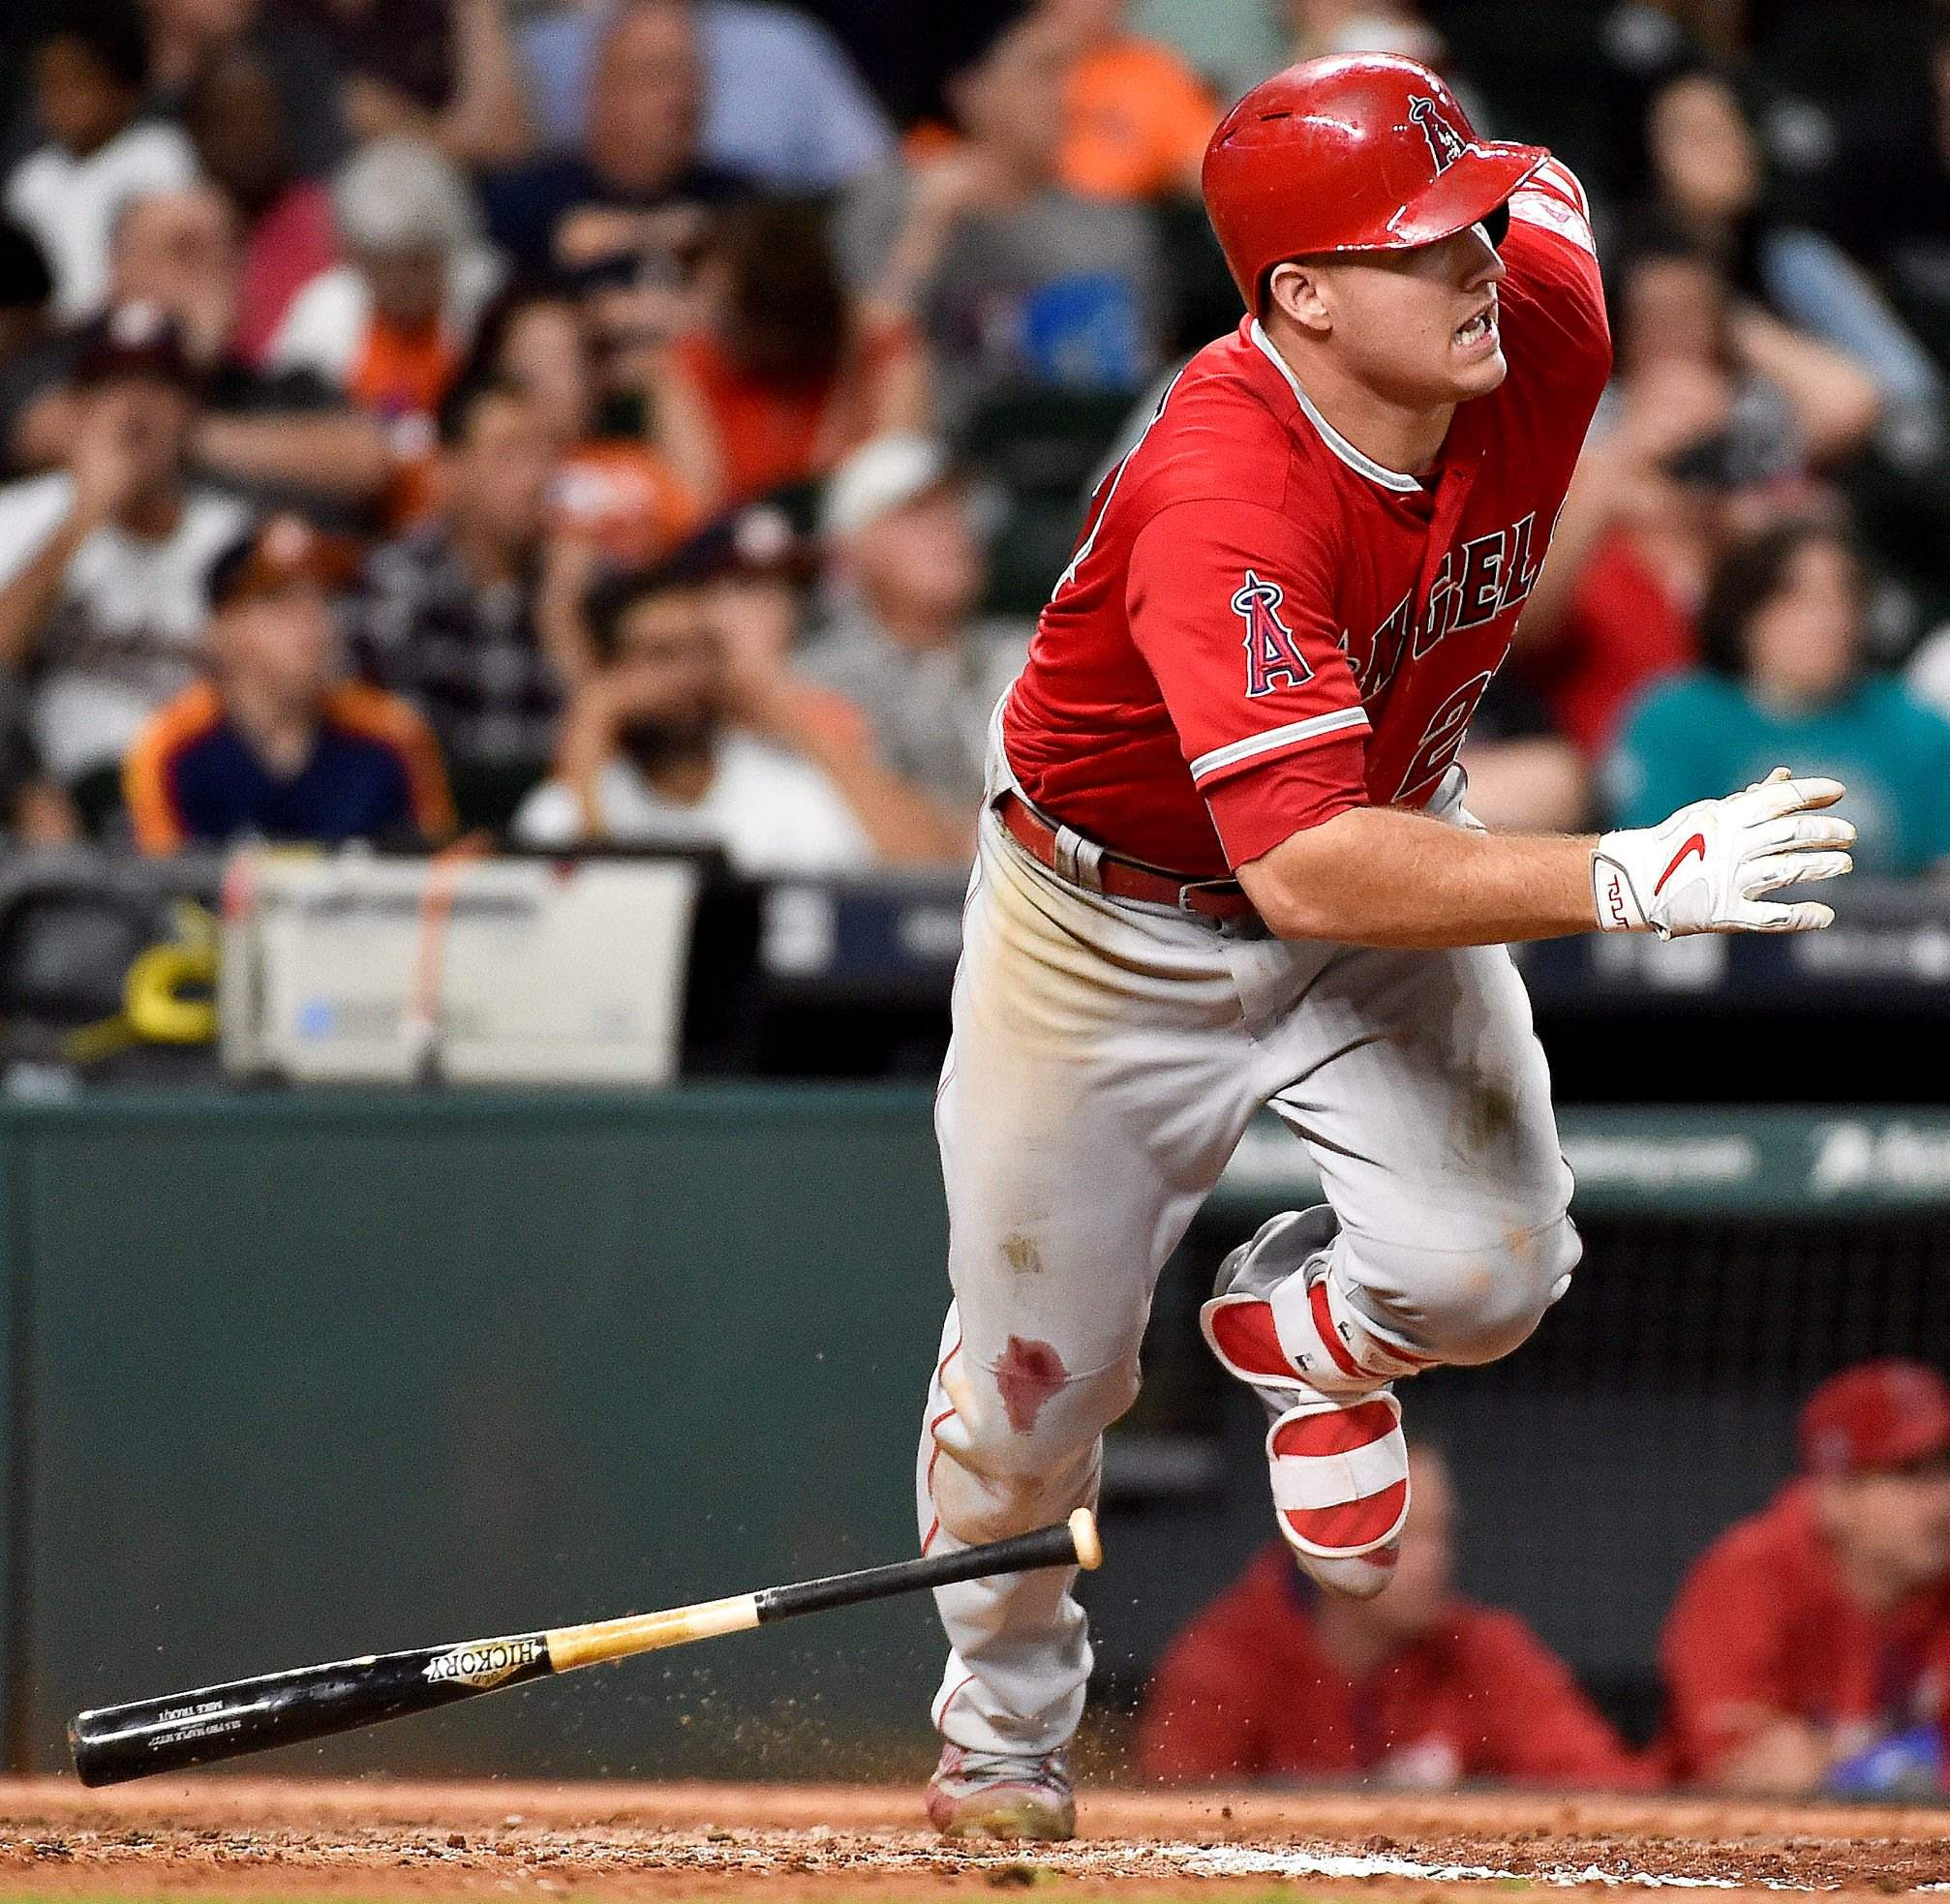 At Only 25 Years Old Los Angeles Angels Star Mike Trout Has Already Won Two AL MVP Awards